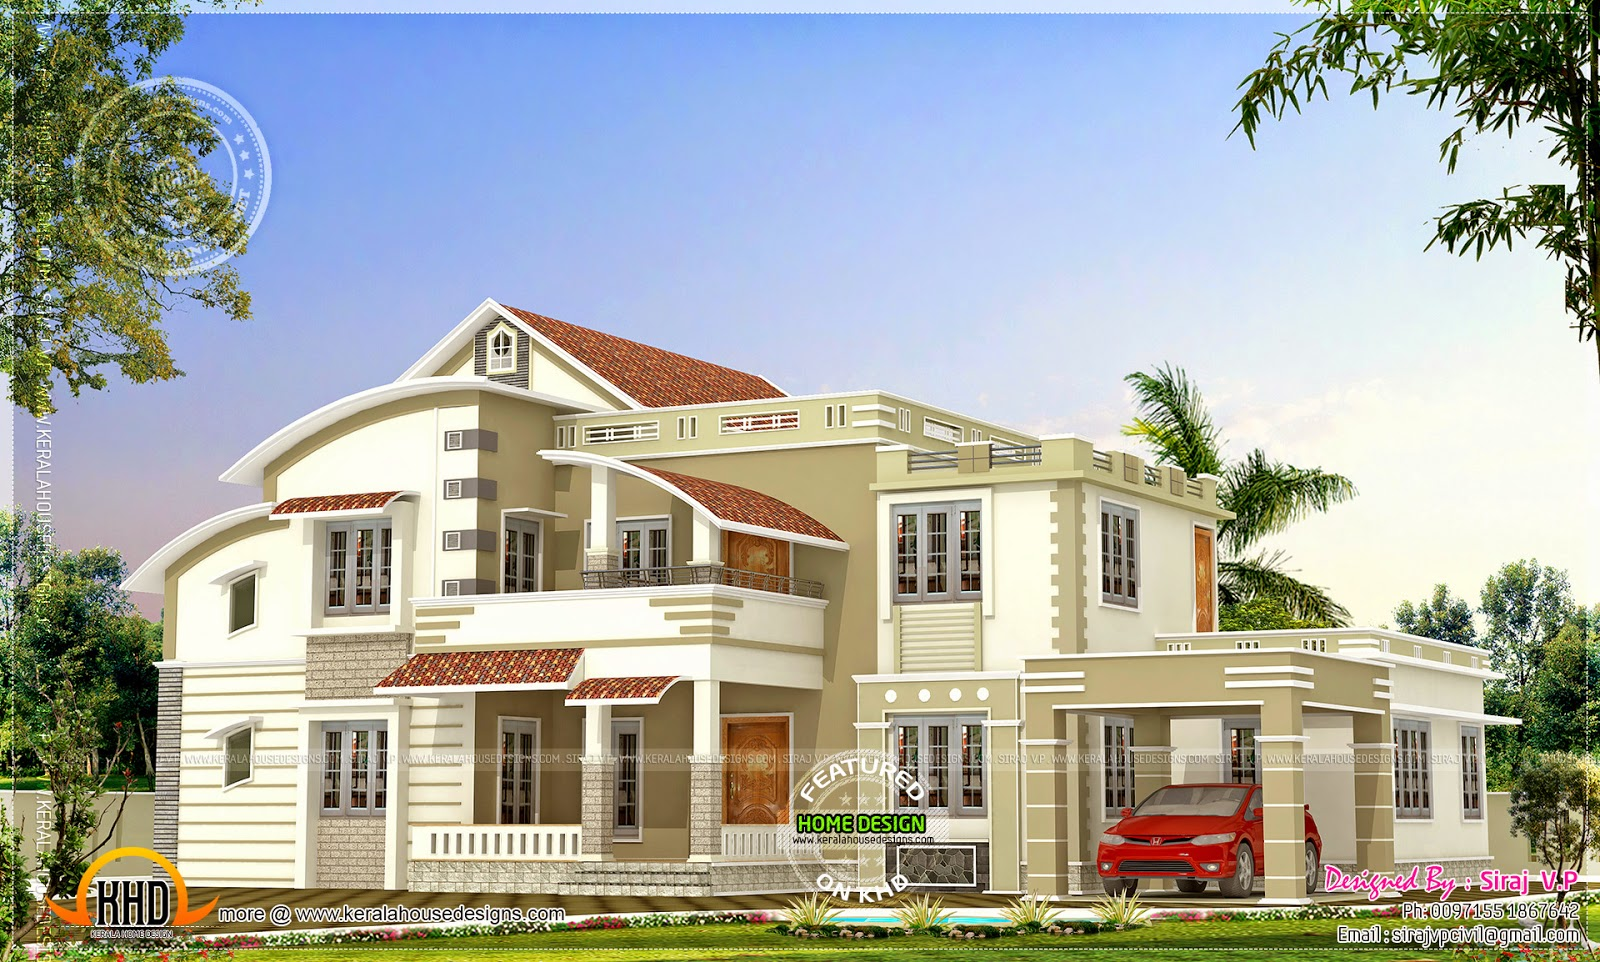 389 square yard luxury villa kerala home design and 200 yards house design